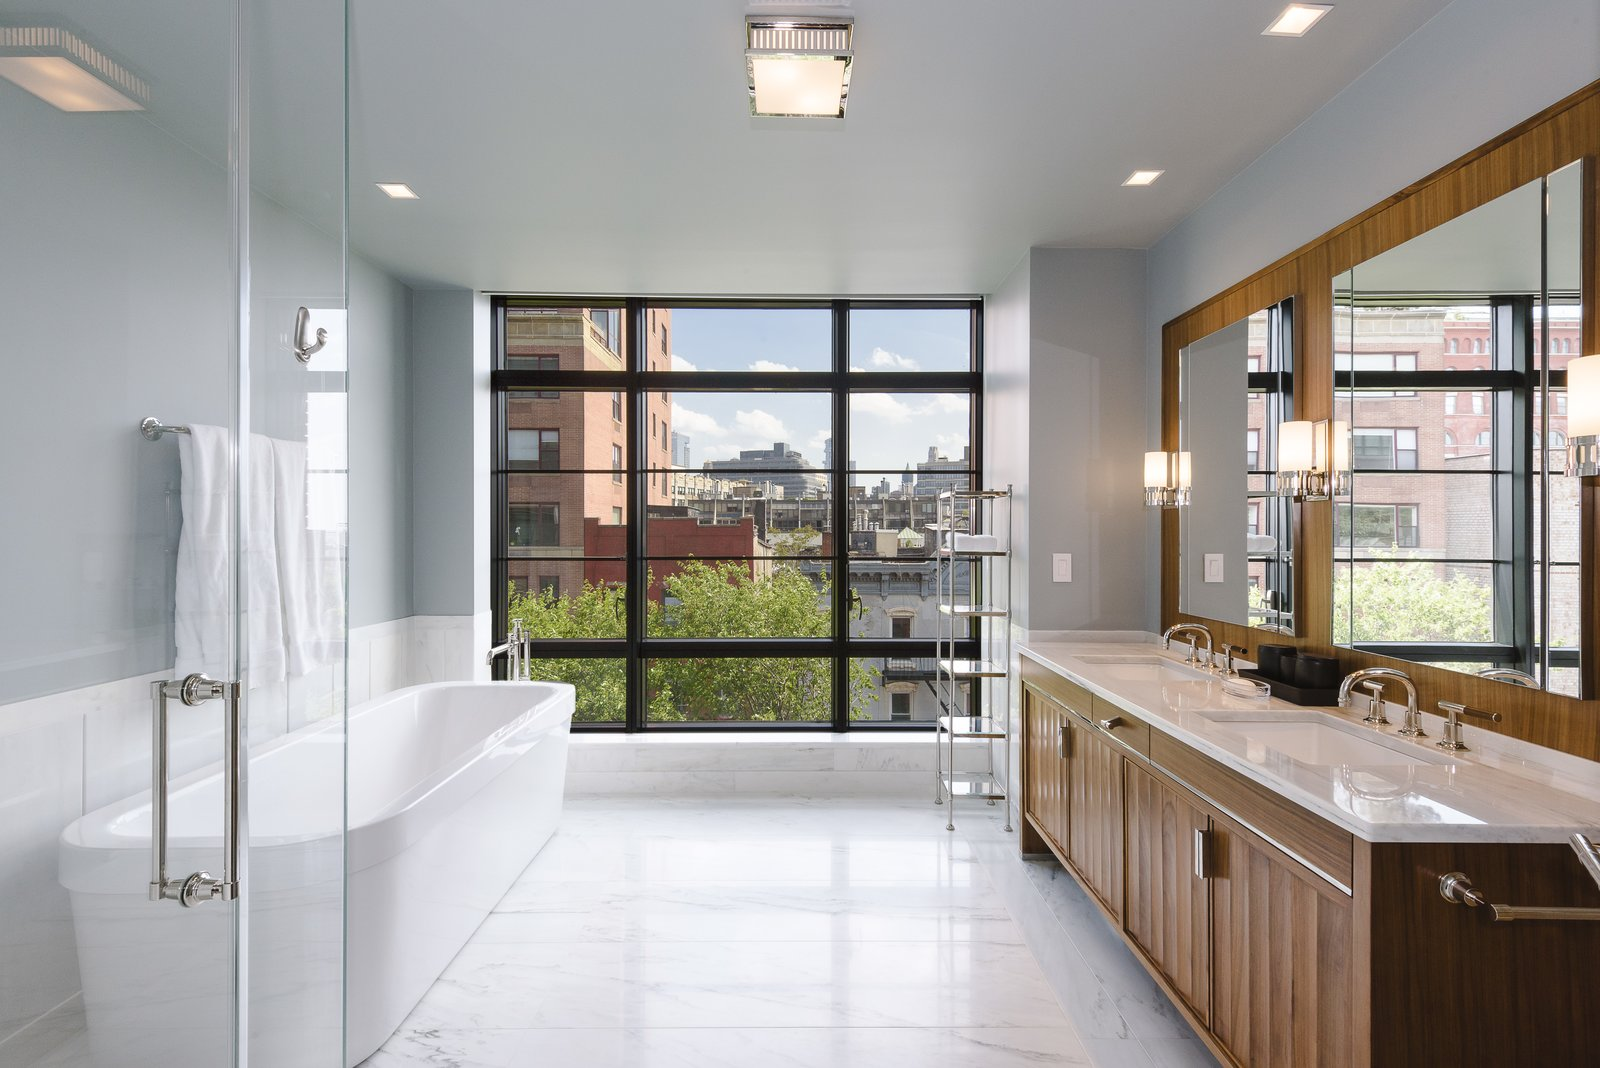 Bath Room, Marble Counter, Ceiling Lighting, Drop In Sink, Enclosed Shower, Freestanding Tub, and Travertine Floor The luxurious master bath has a double vanity, soaking tub, glass enclosed stall shower and wall of windows.  Photo 6 of 8 in Jon Bon Jovi Sells His West Village Duplex For $16M